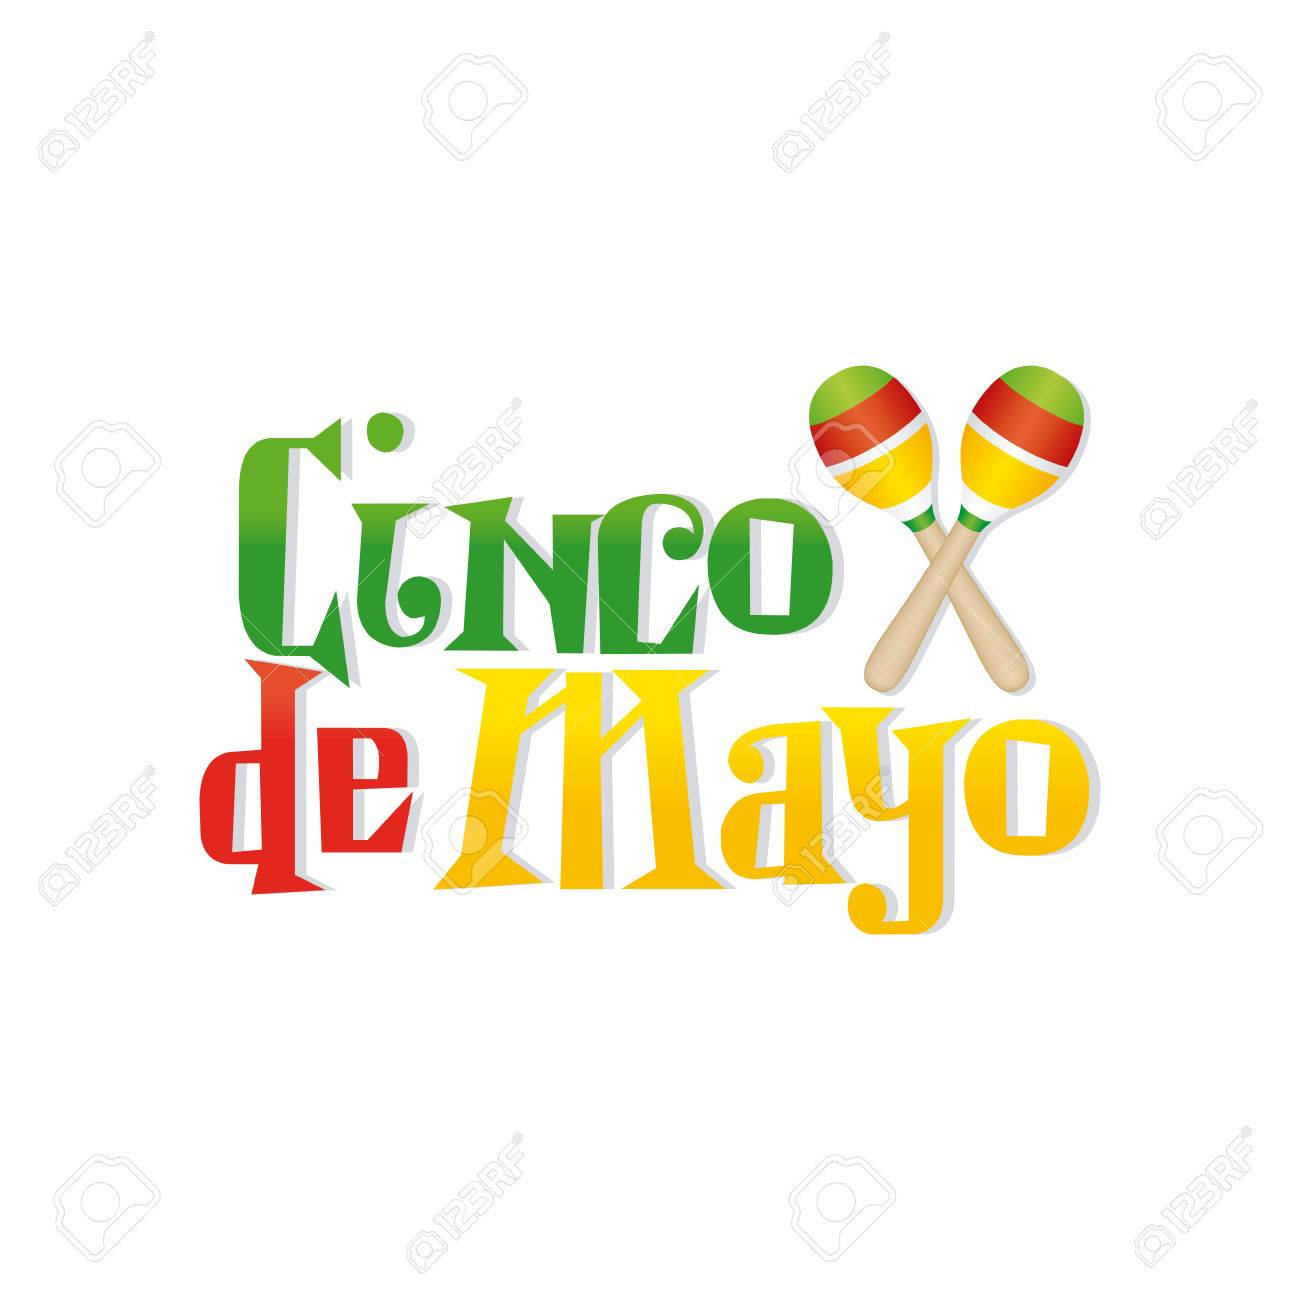 1300x1300 White Background With Text And Maracas For Cinco De Mayo